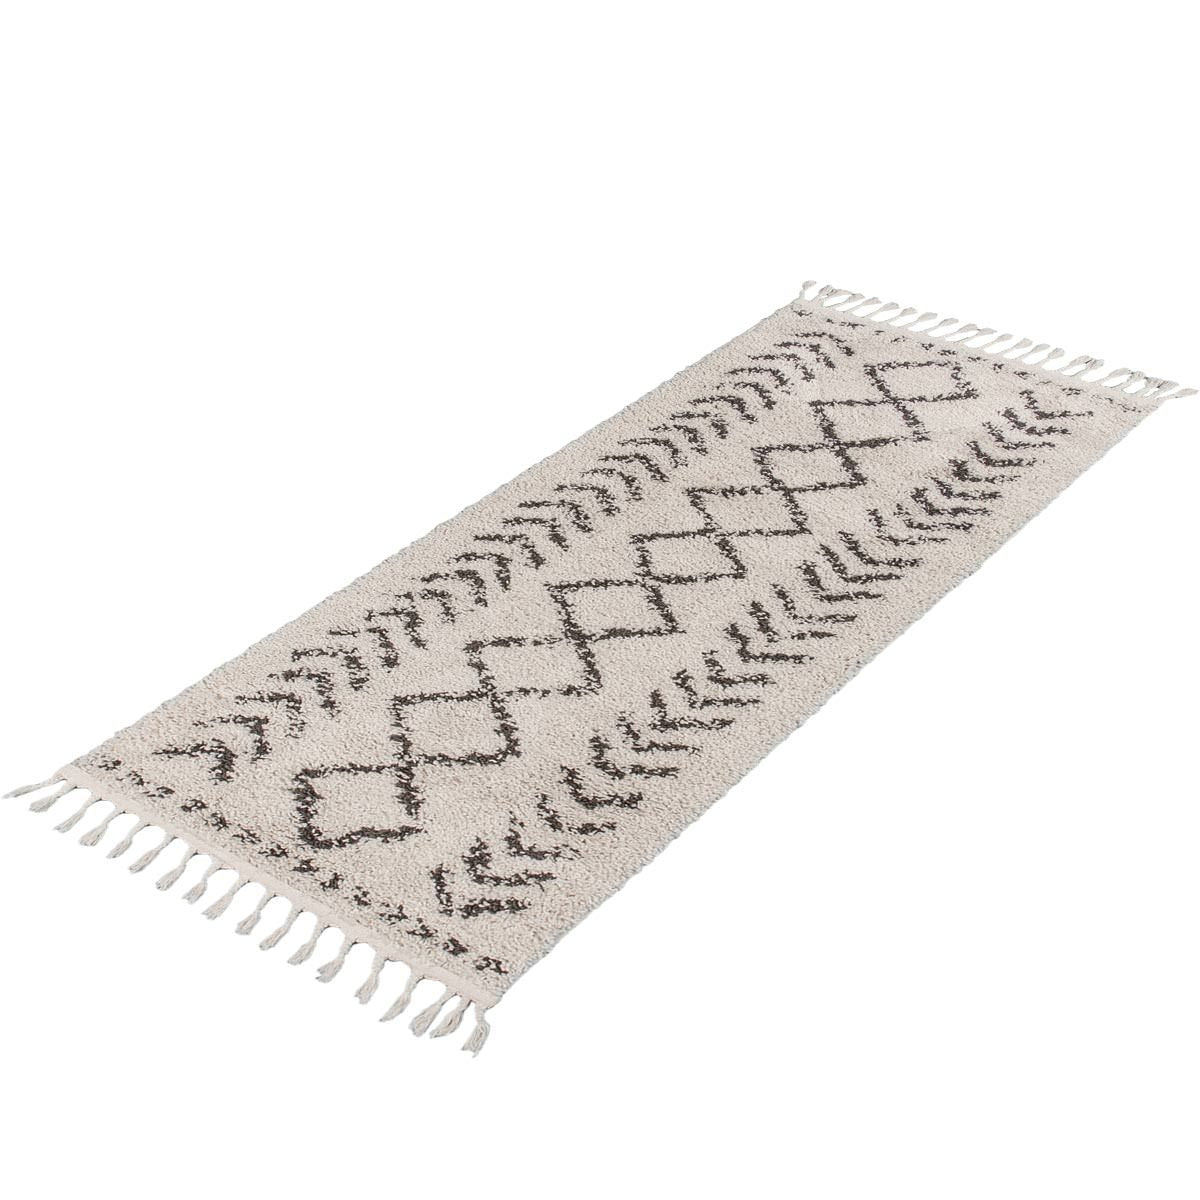 Shaggy Marrakech Rug 04 Cream/Black Runner 7